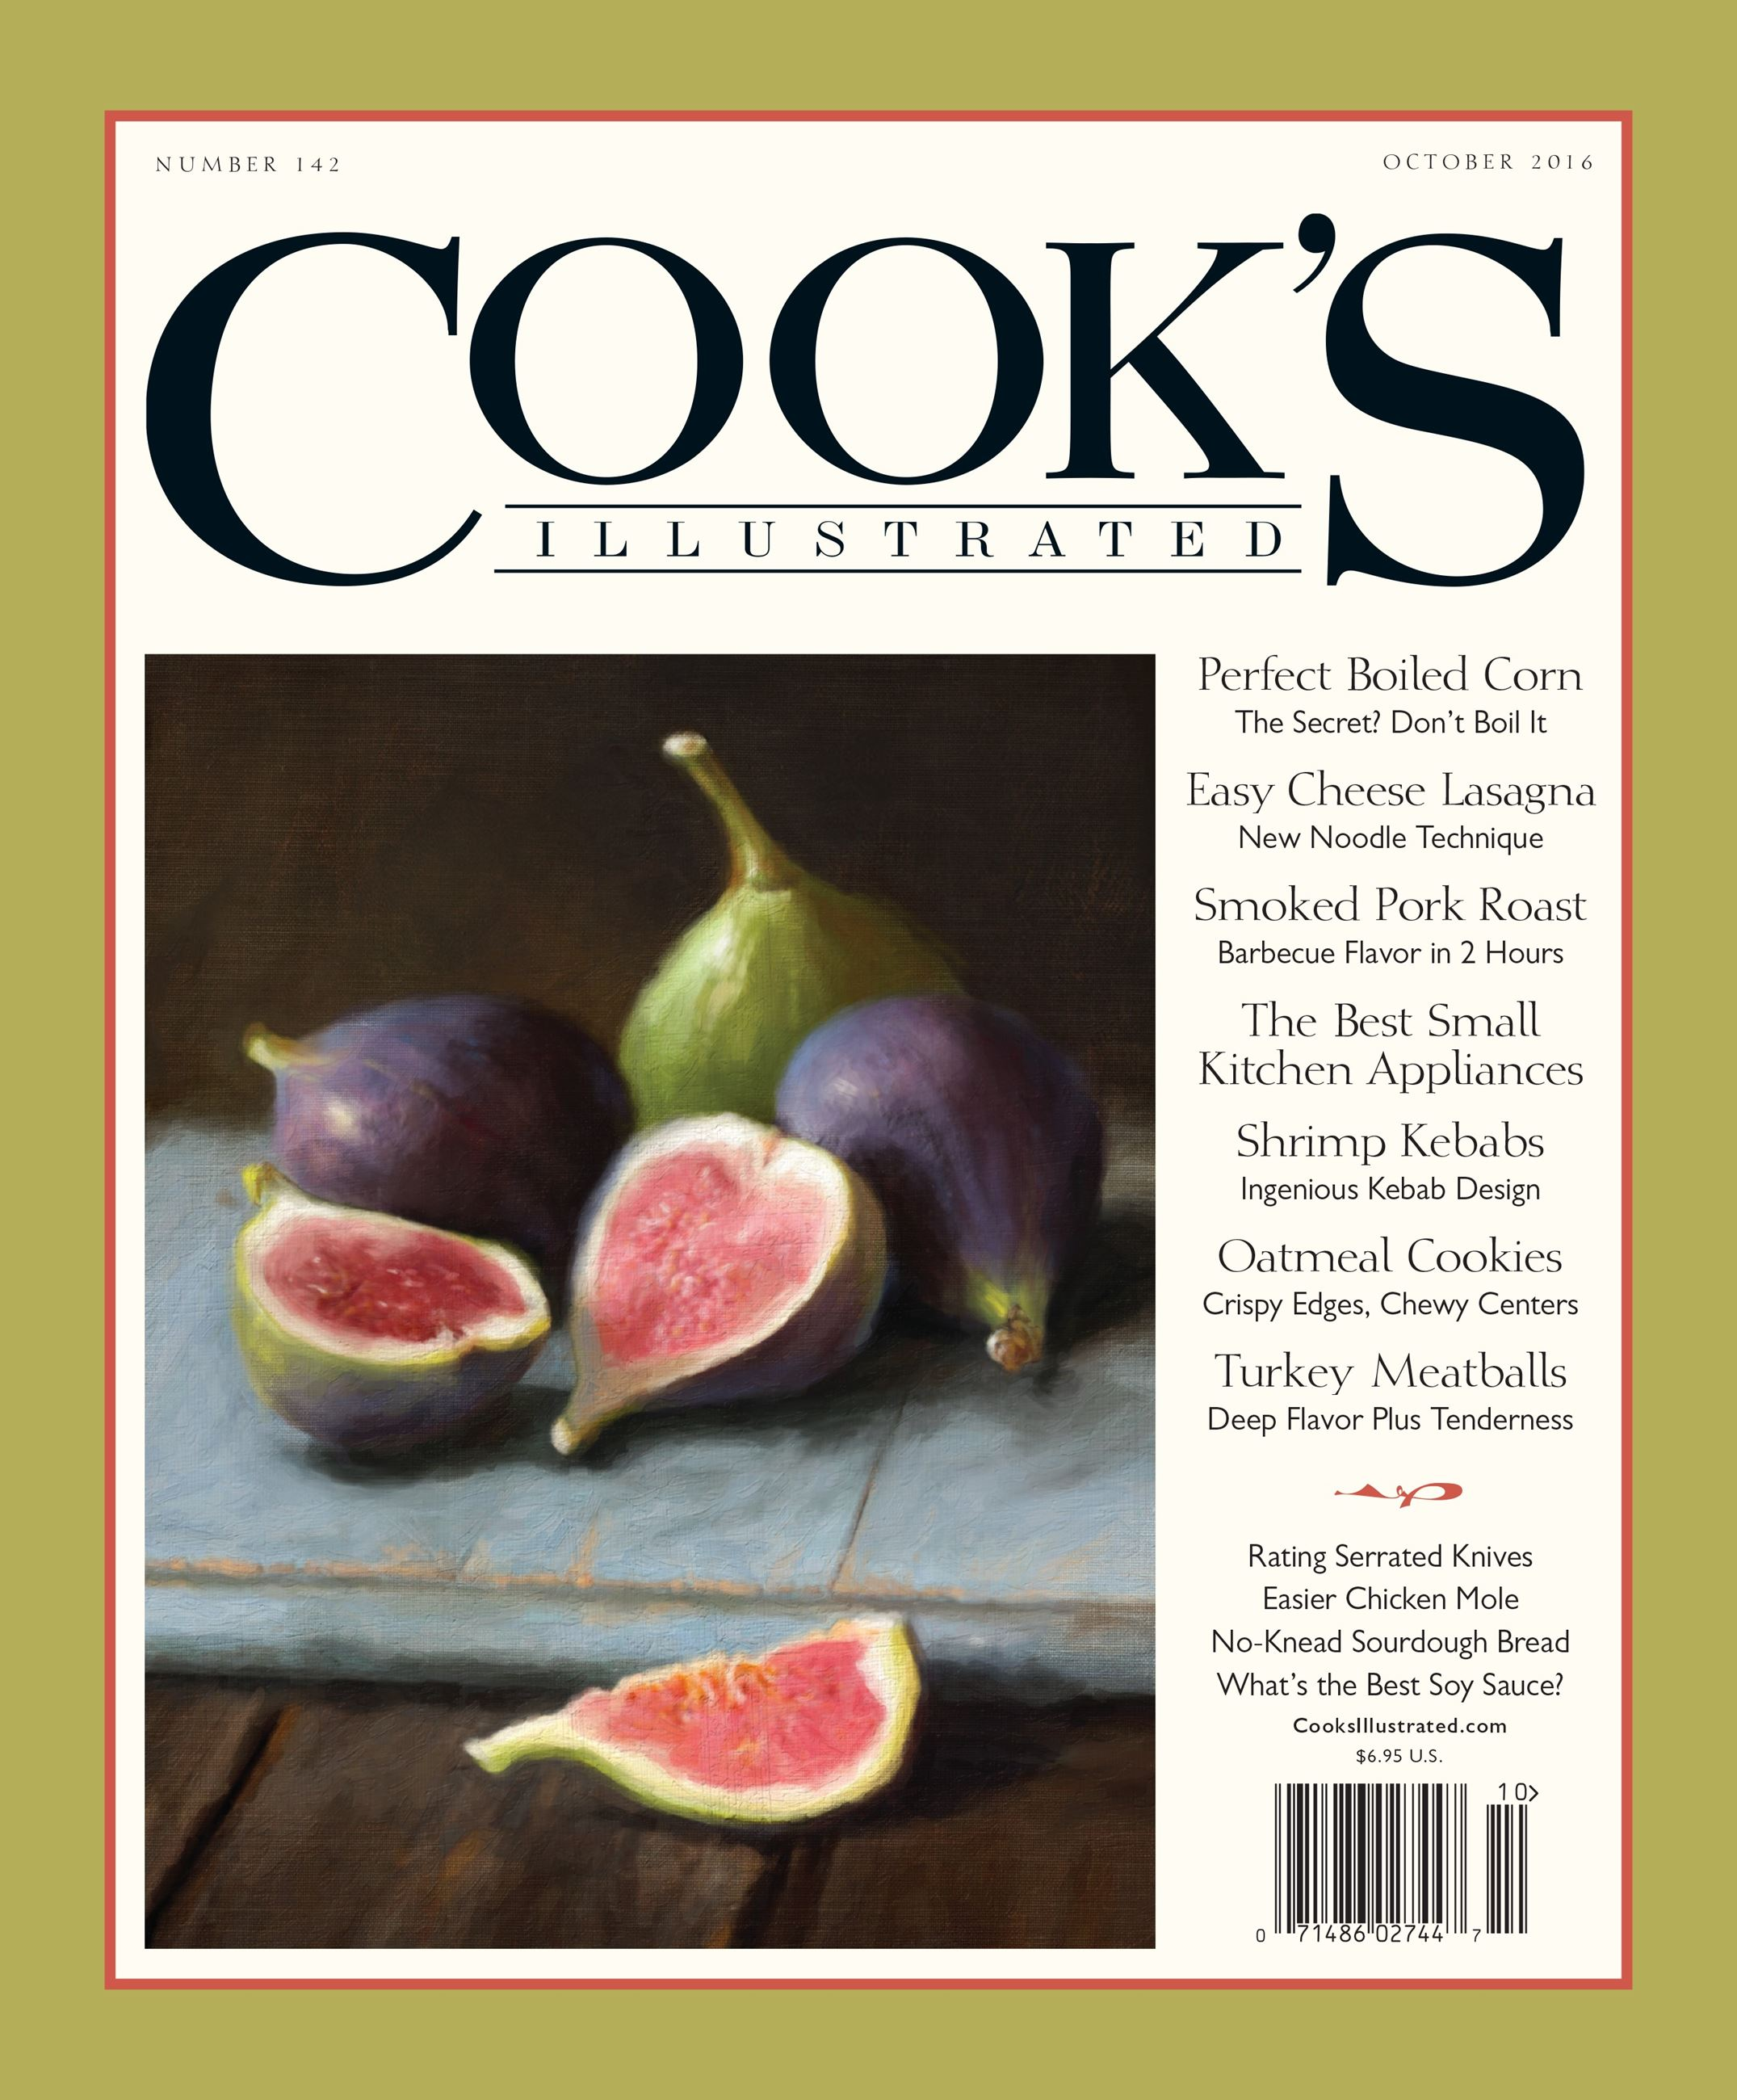 Cooks Magazine Opens in new window